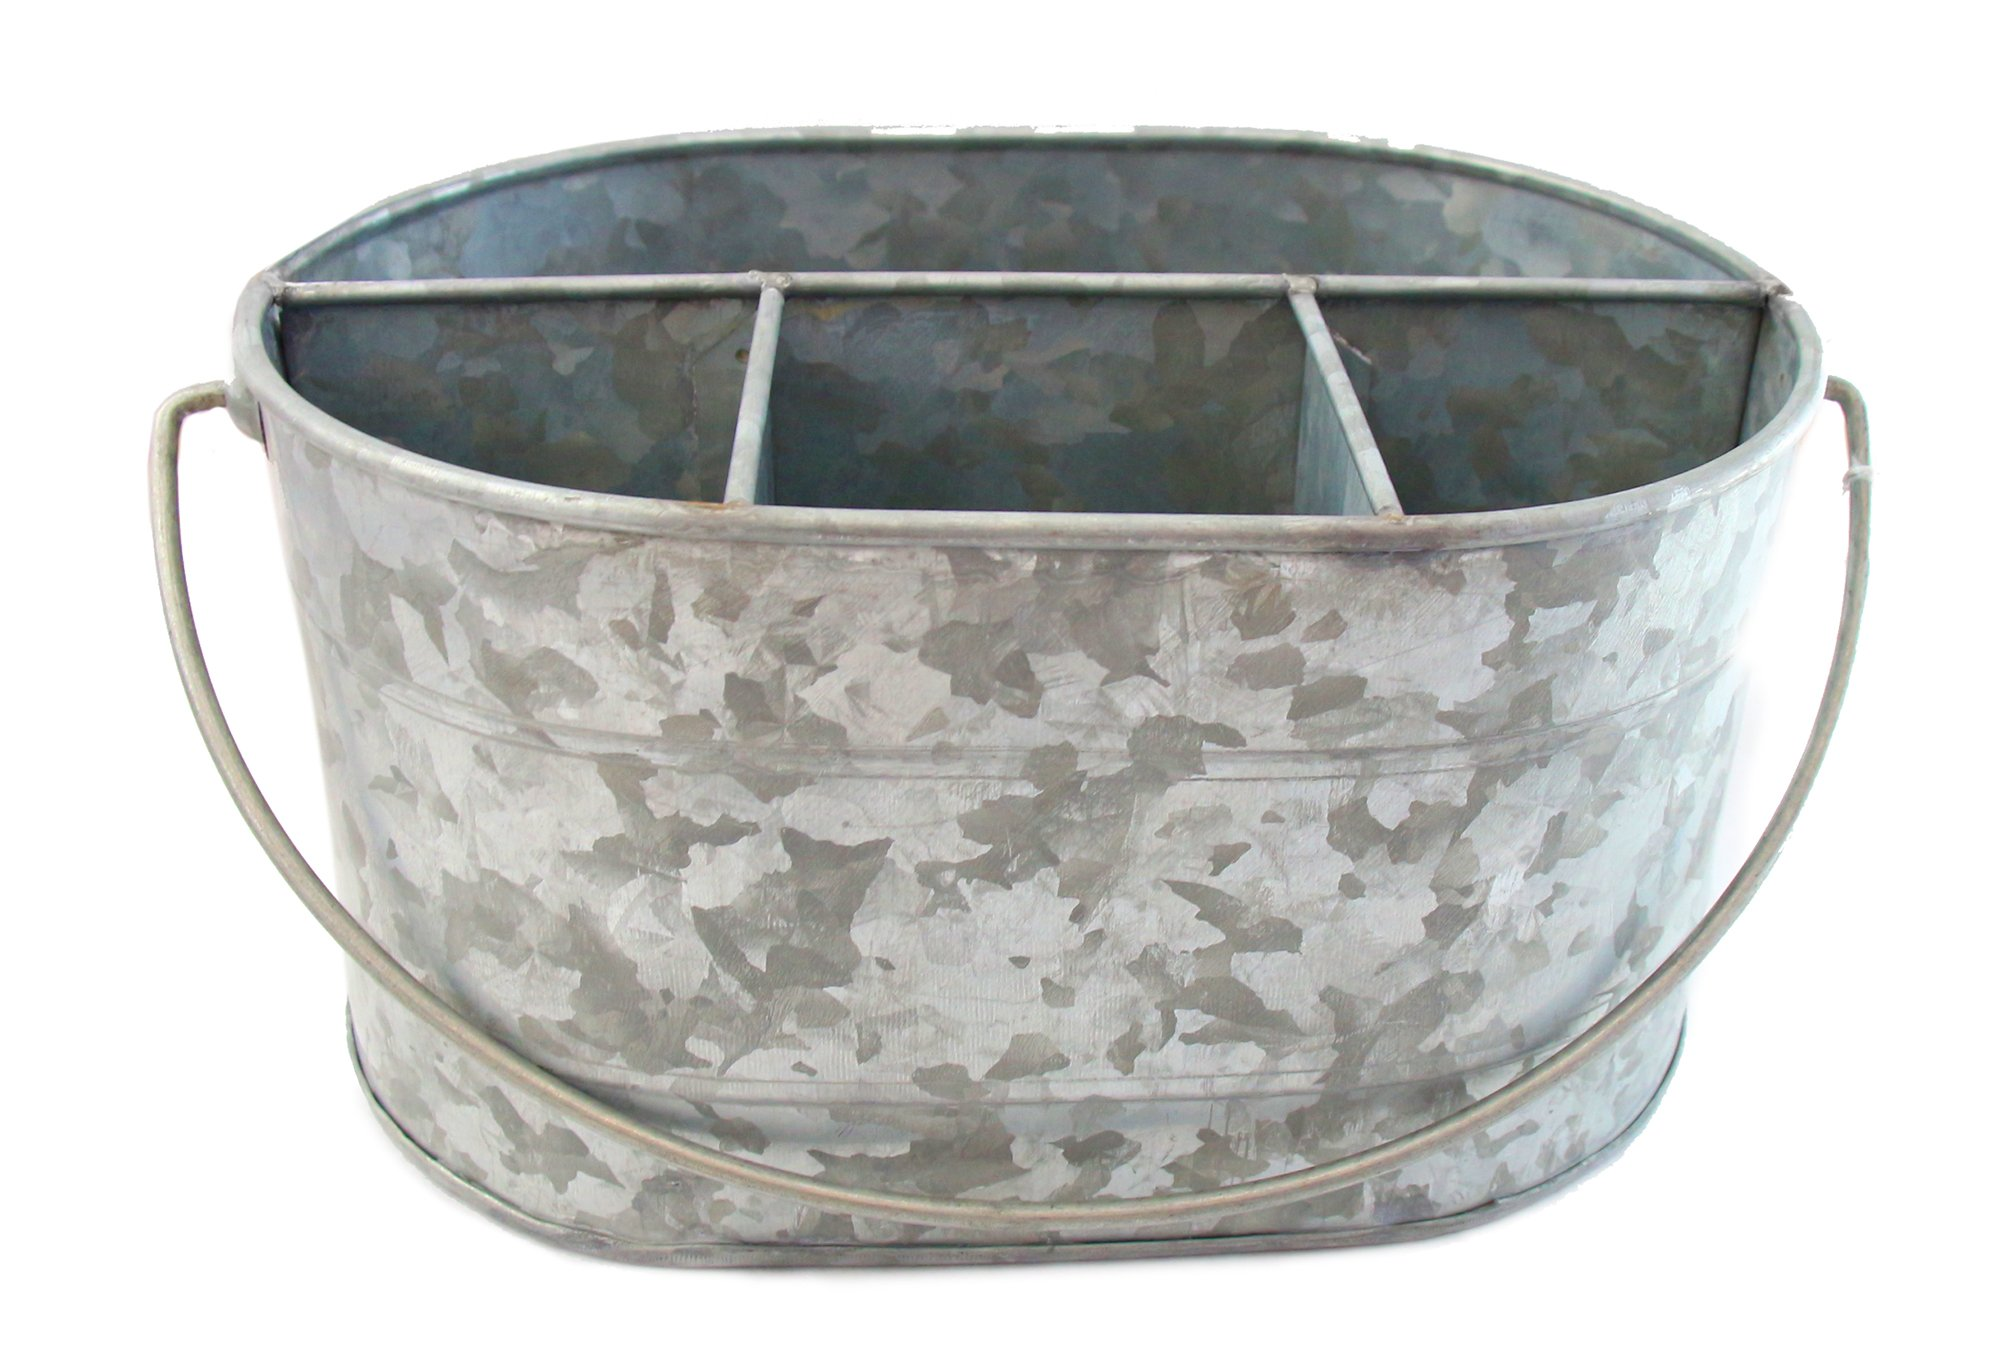 Well Pack Box Large Galvanized Bucket Steel Decor Drink Tub Caddy Serveware Utensil Organizer Utensil Picnic Napkin Metal Farmhouse Rustic Holder Great for Parties, Picnics, Kitchens, and Showers by Well Pack Box